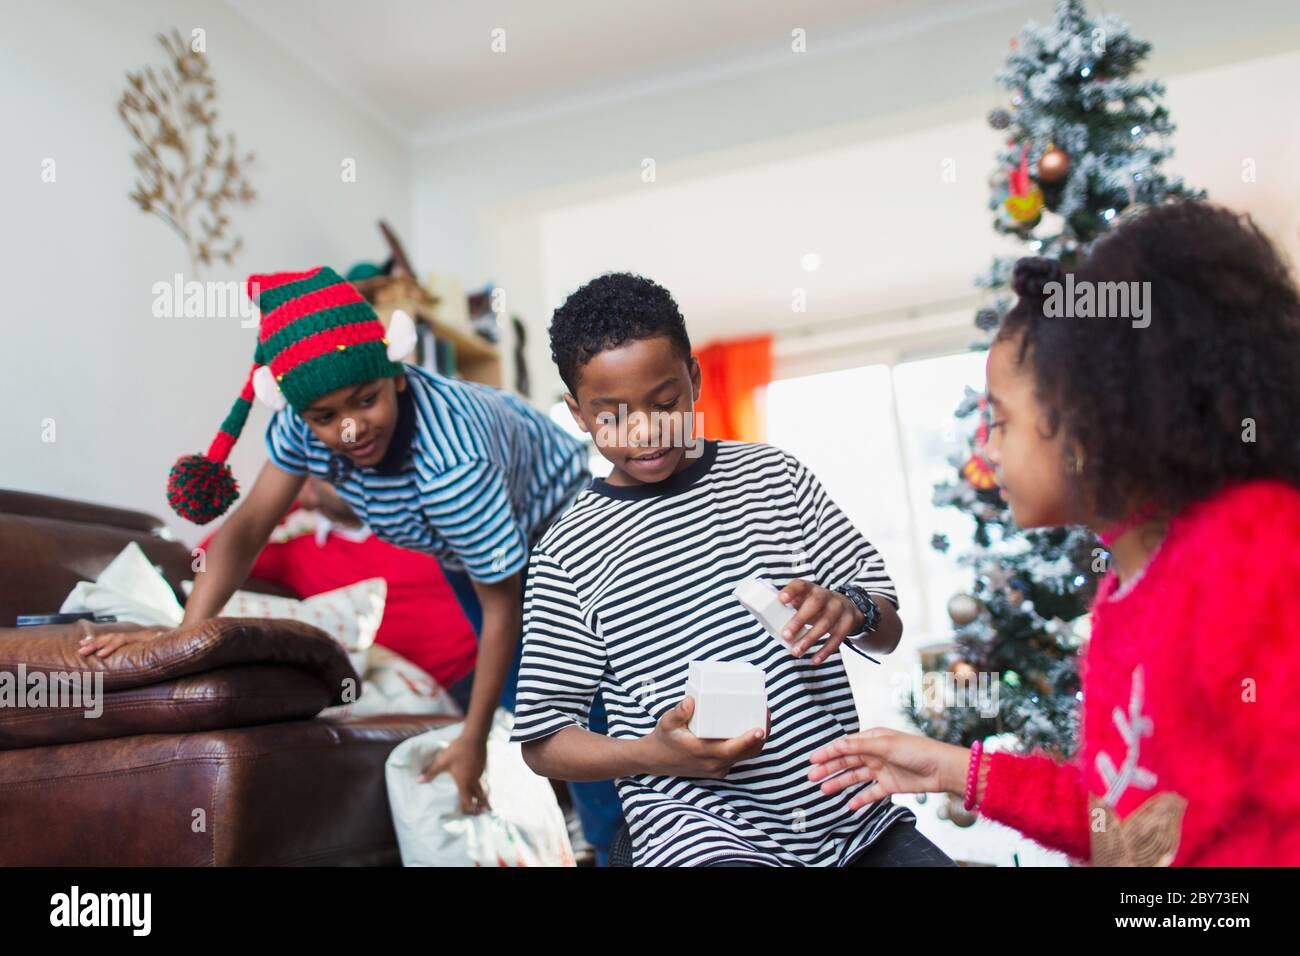 Family opening Christmas gift in living room Stock Photo